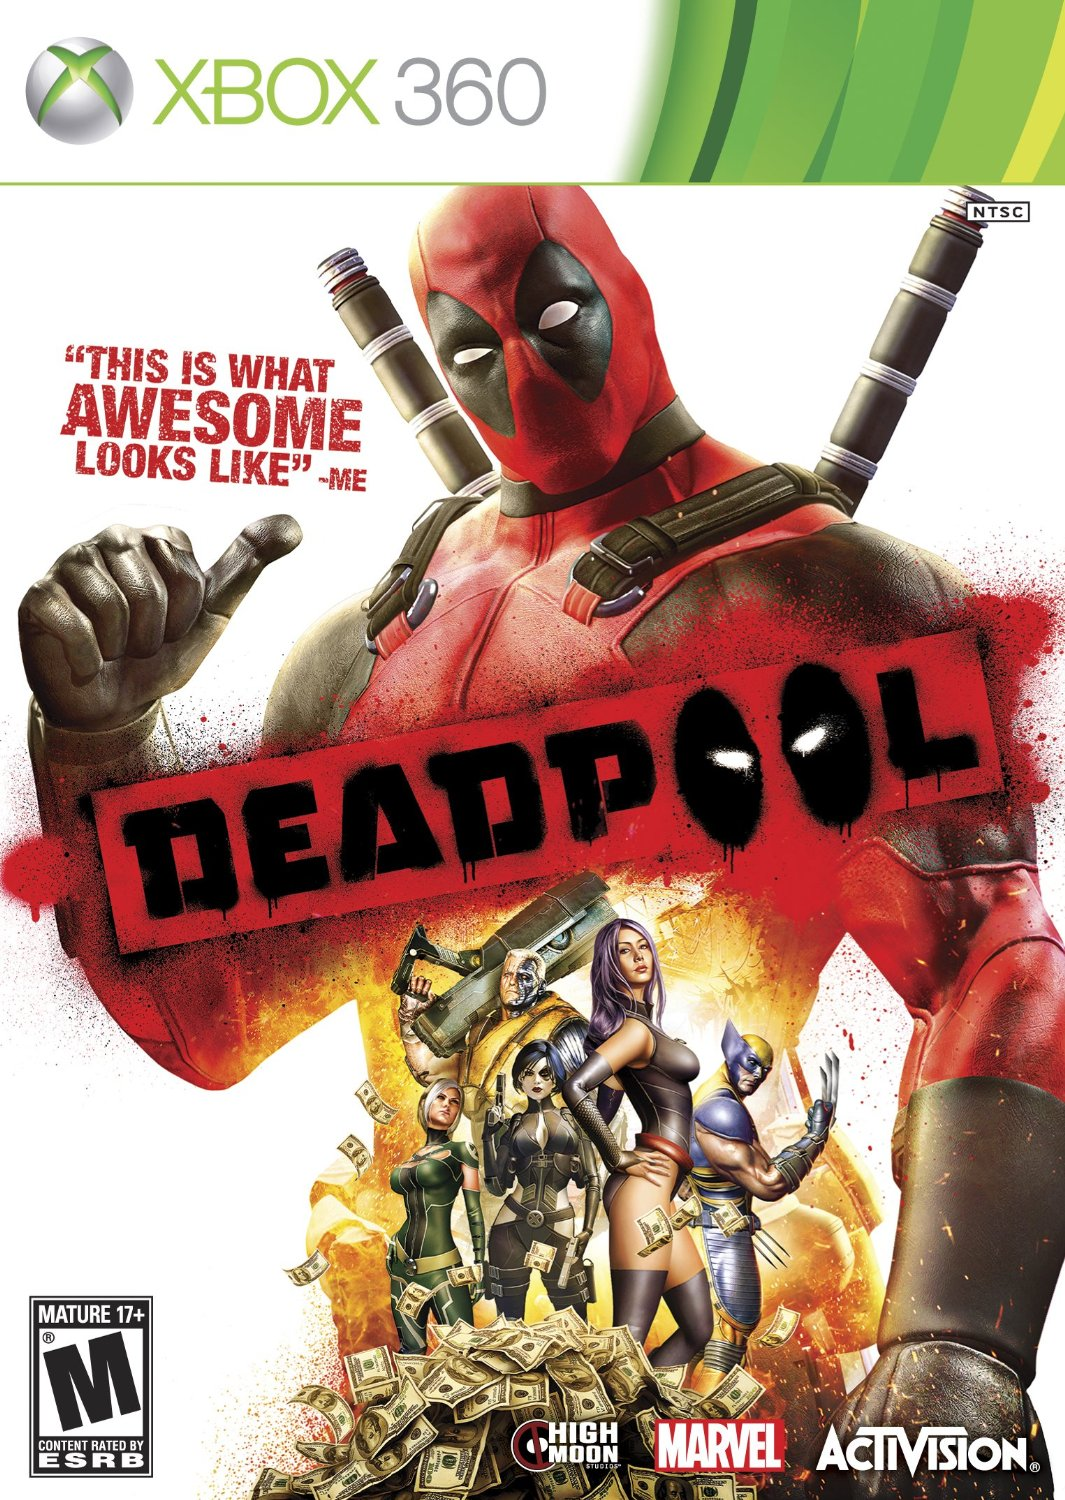 Play The Game: Deadpool Edition